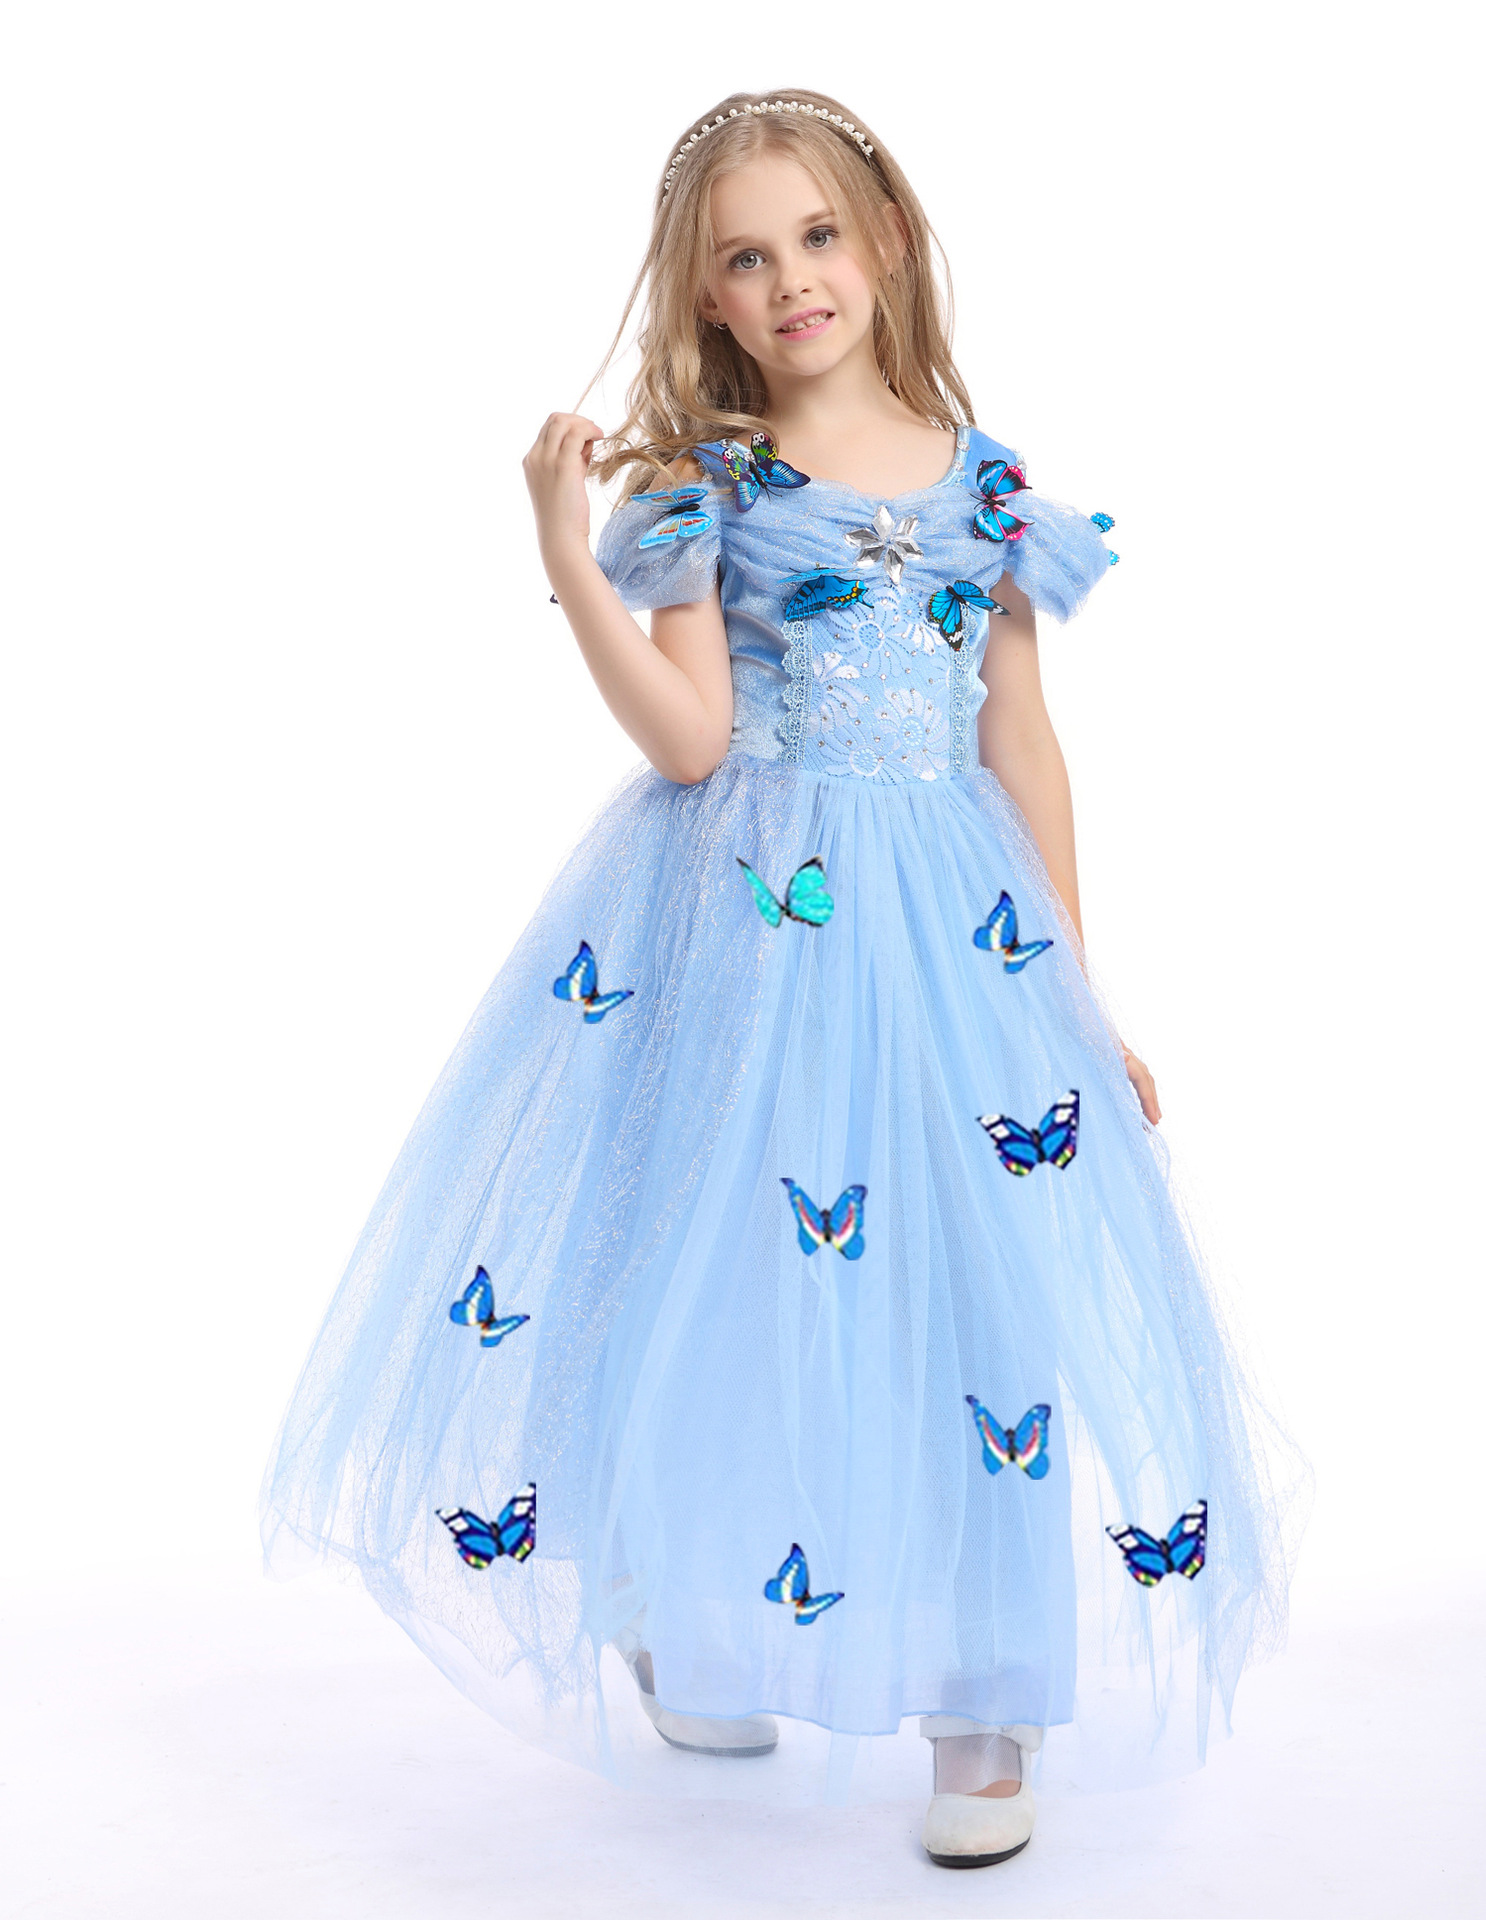 bdc08f98392c ... Princess Dress Girls skirt costumes summer dress manufacturers  undefined undefined undefined undefined undefined undefined undefined.  undefined